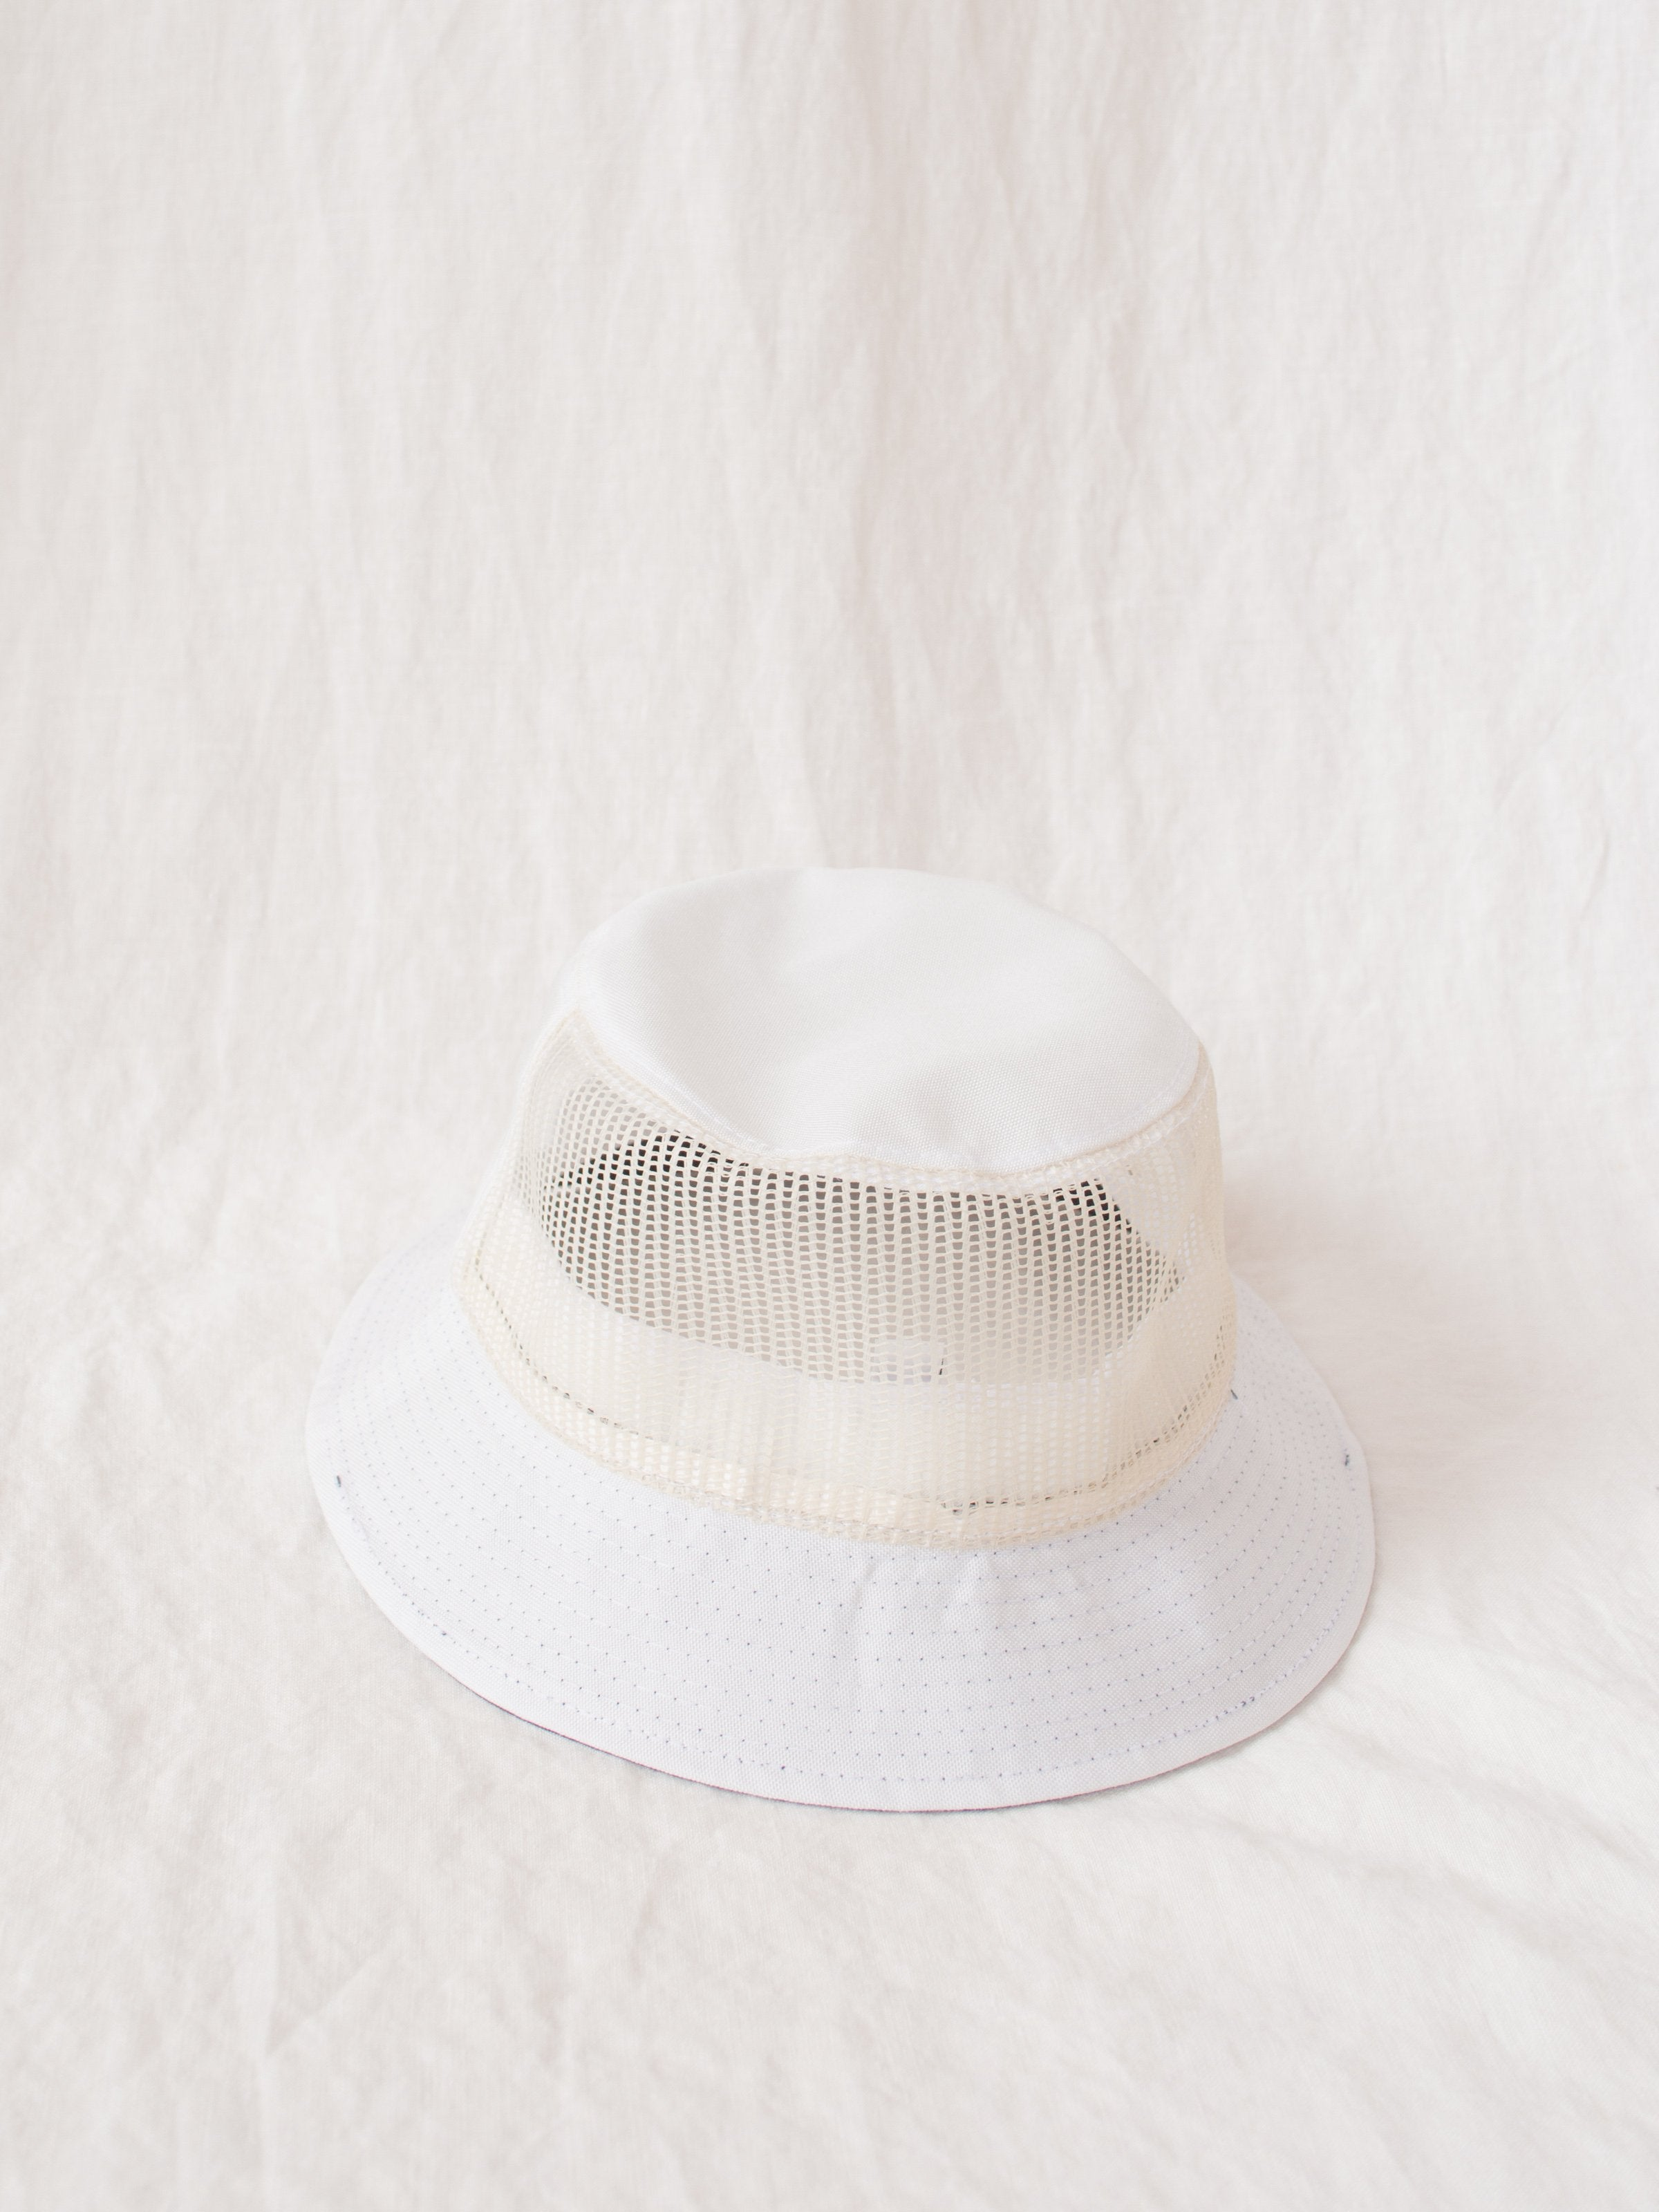 Namu Shop - paa Bucket Hat 1 - Ready to Dye